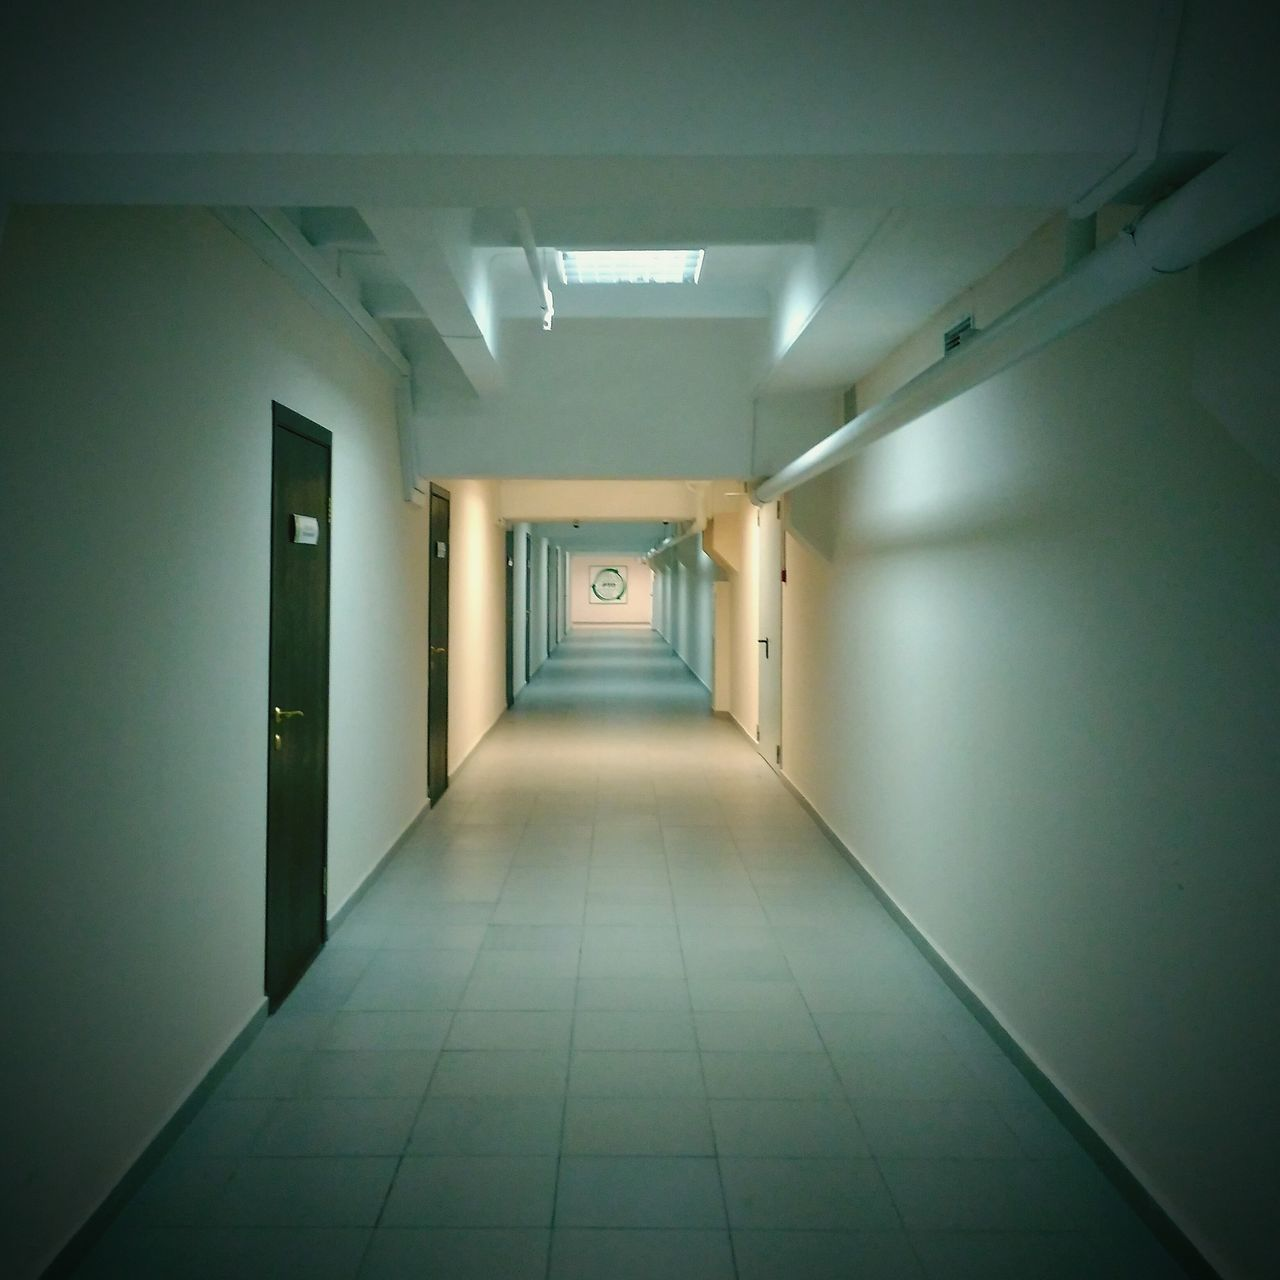 indoors, corridor, the way forward, empty, ceiling, architecture, illuminated, no people, built structure, day